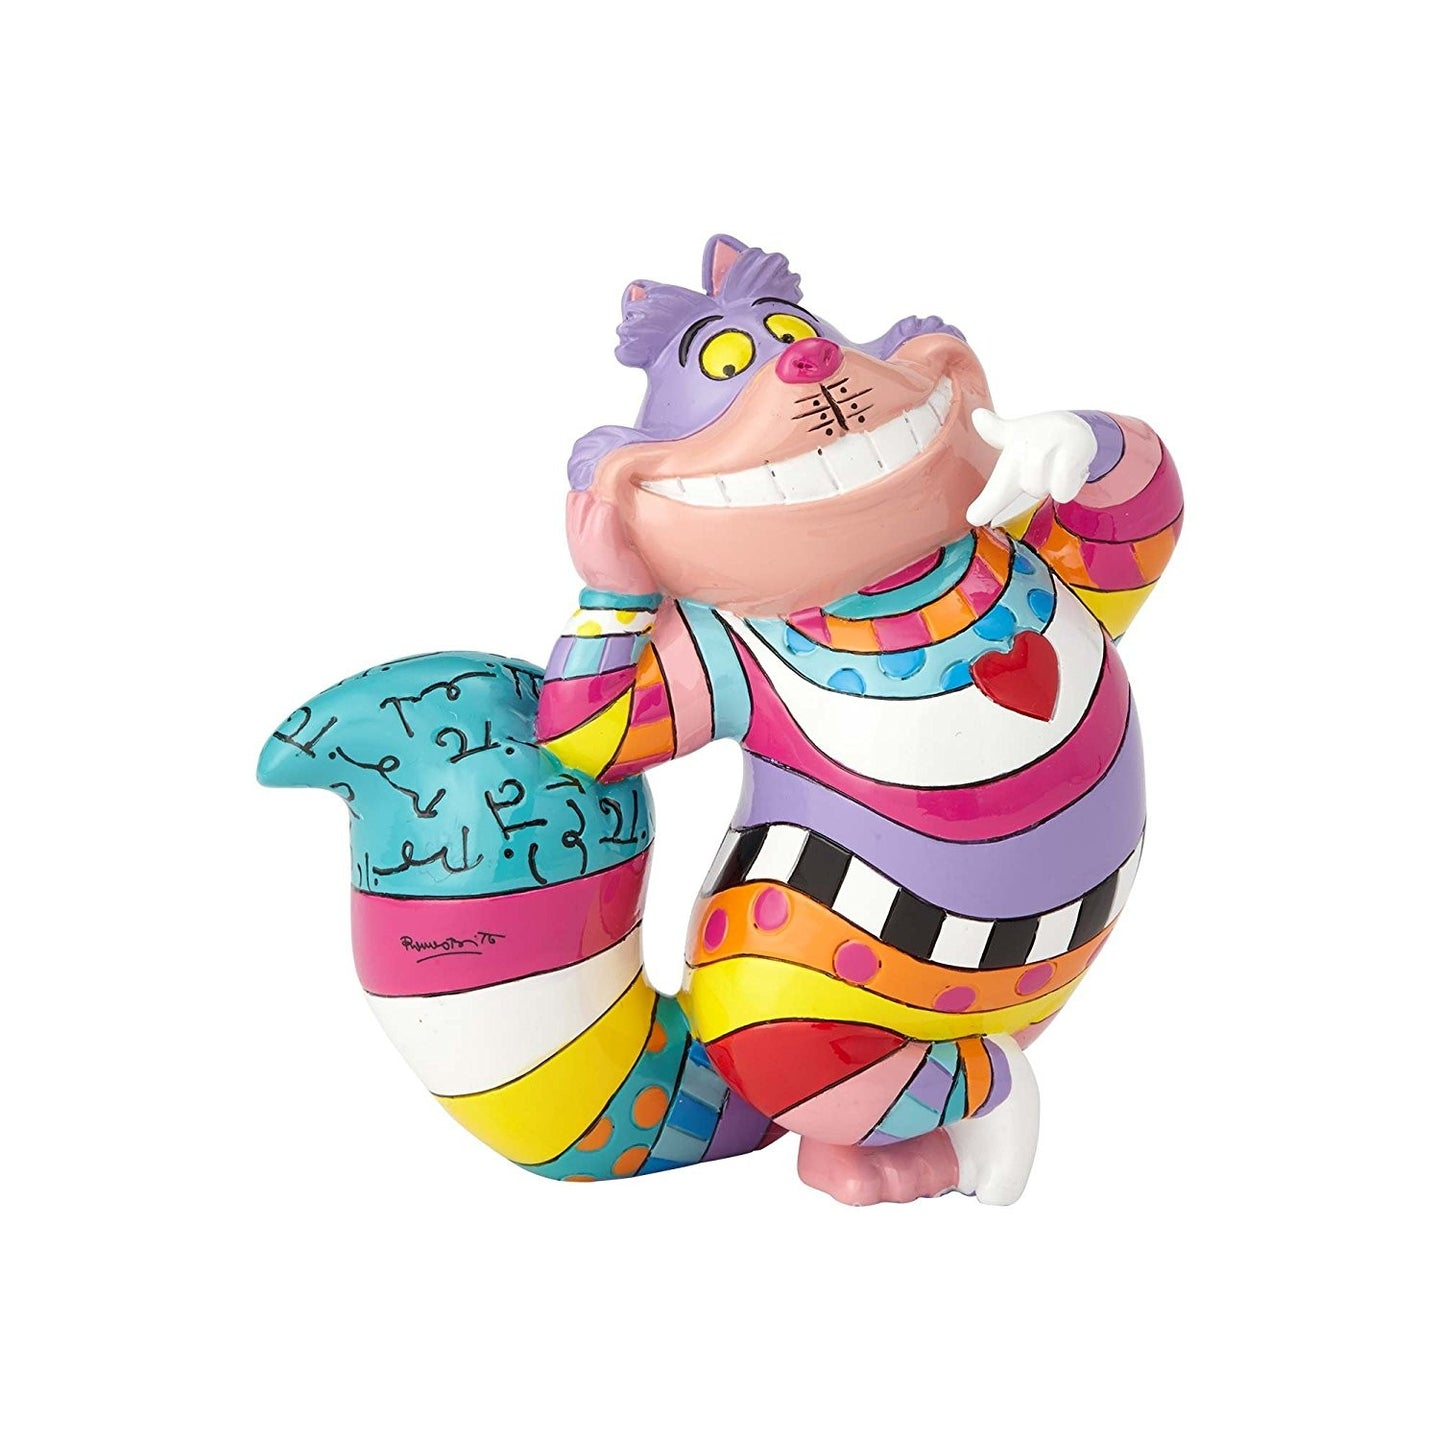 Cheshire Cat Mini Figurine by Romero Britto